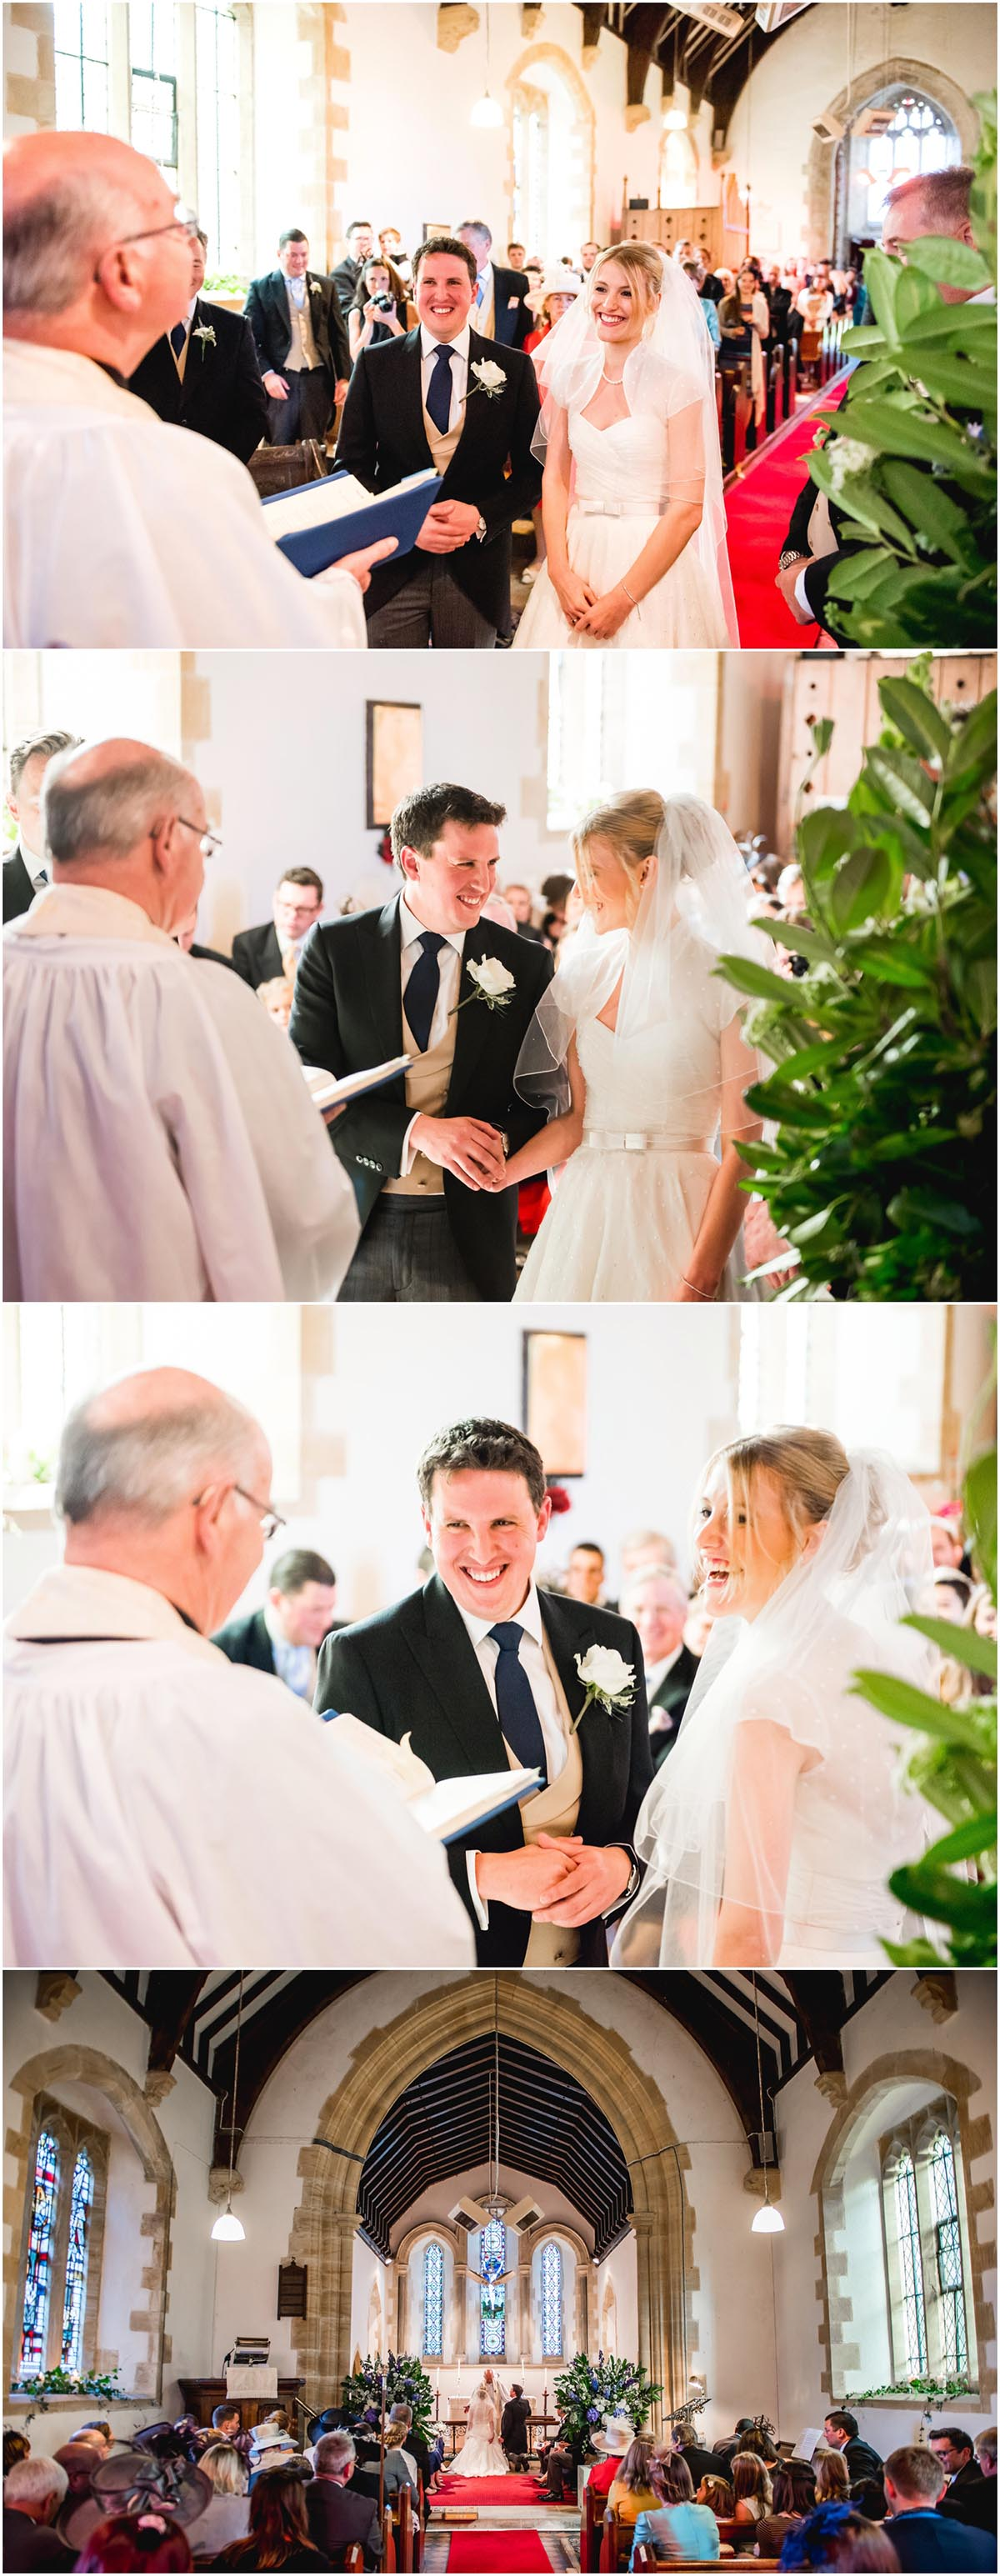 Susie and Ed's Dorset Wedding in Alton Pancras, Dorset, near Cerne Abbas, By Lisa Carpenter Photography, West Midlands, Birmingham based photographer, ceremony